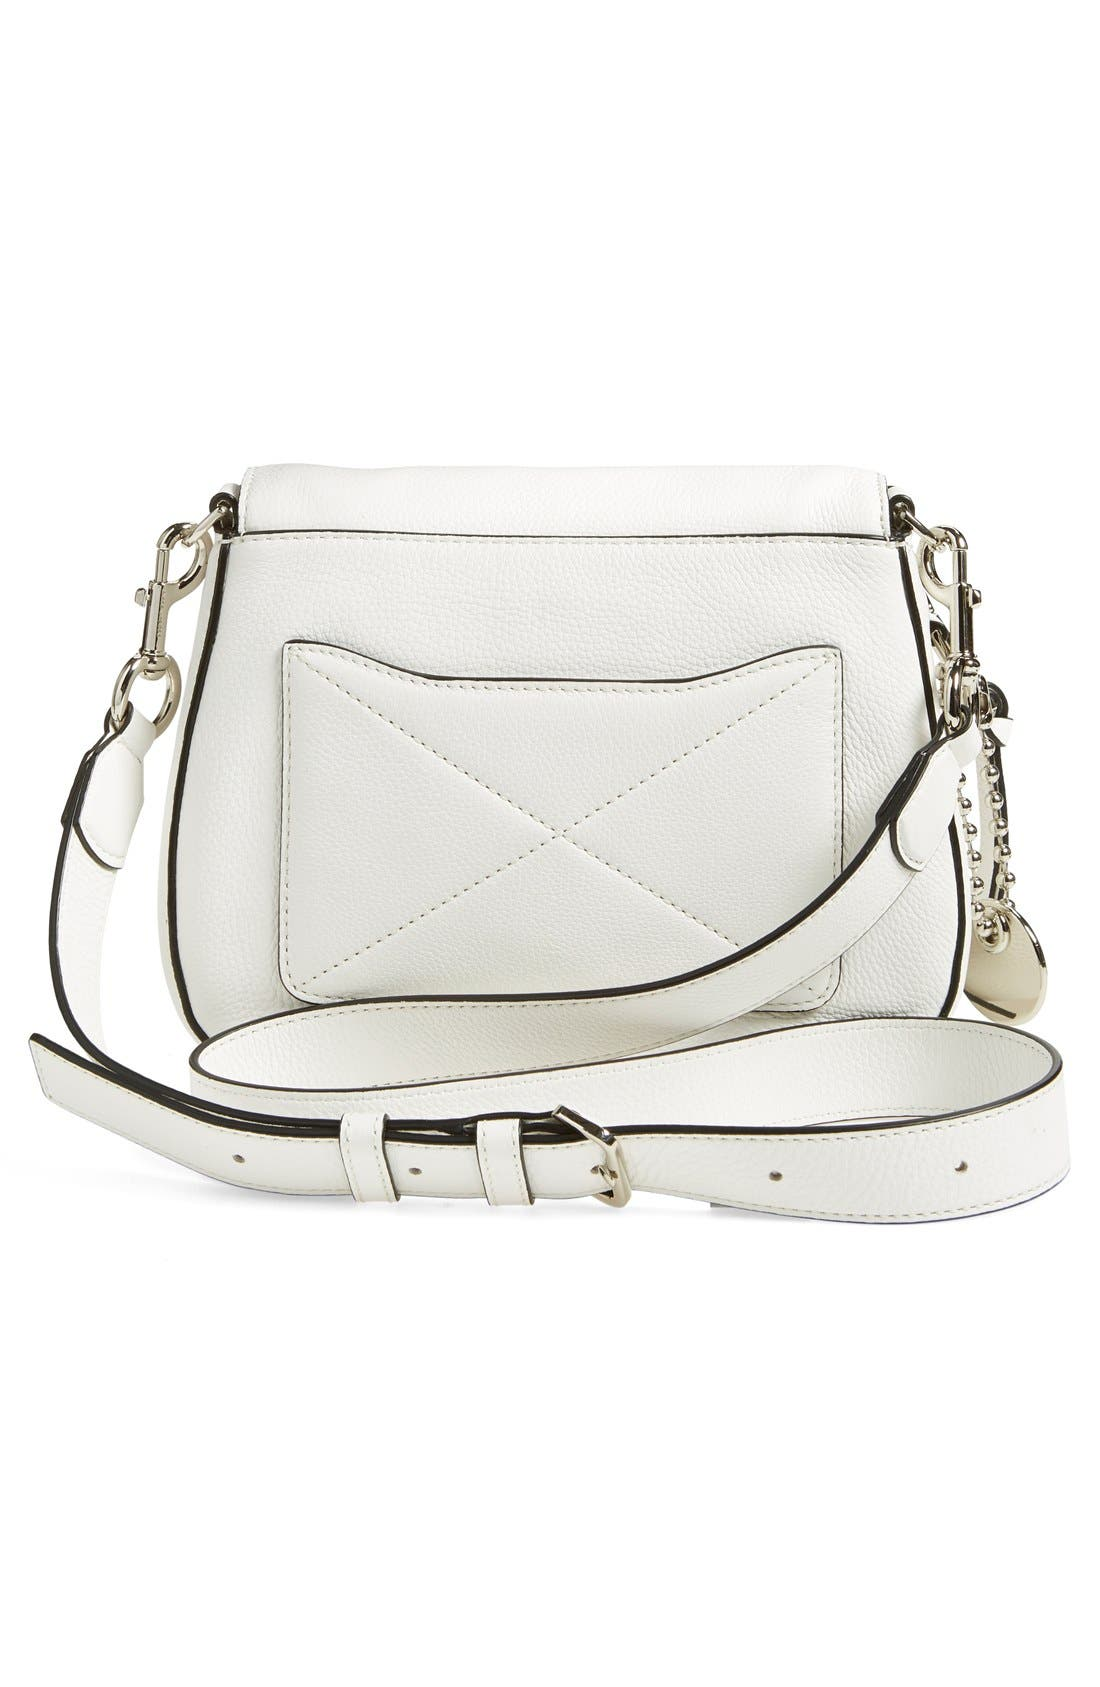 Small Recruit Nomad Pebbled Leather Crossbody Bag,                             Alternate thumbnail 42, color,